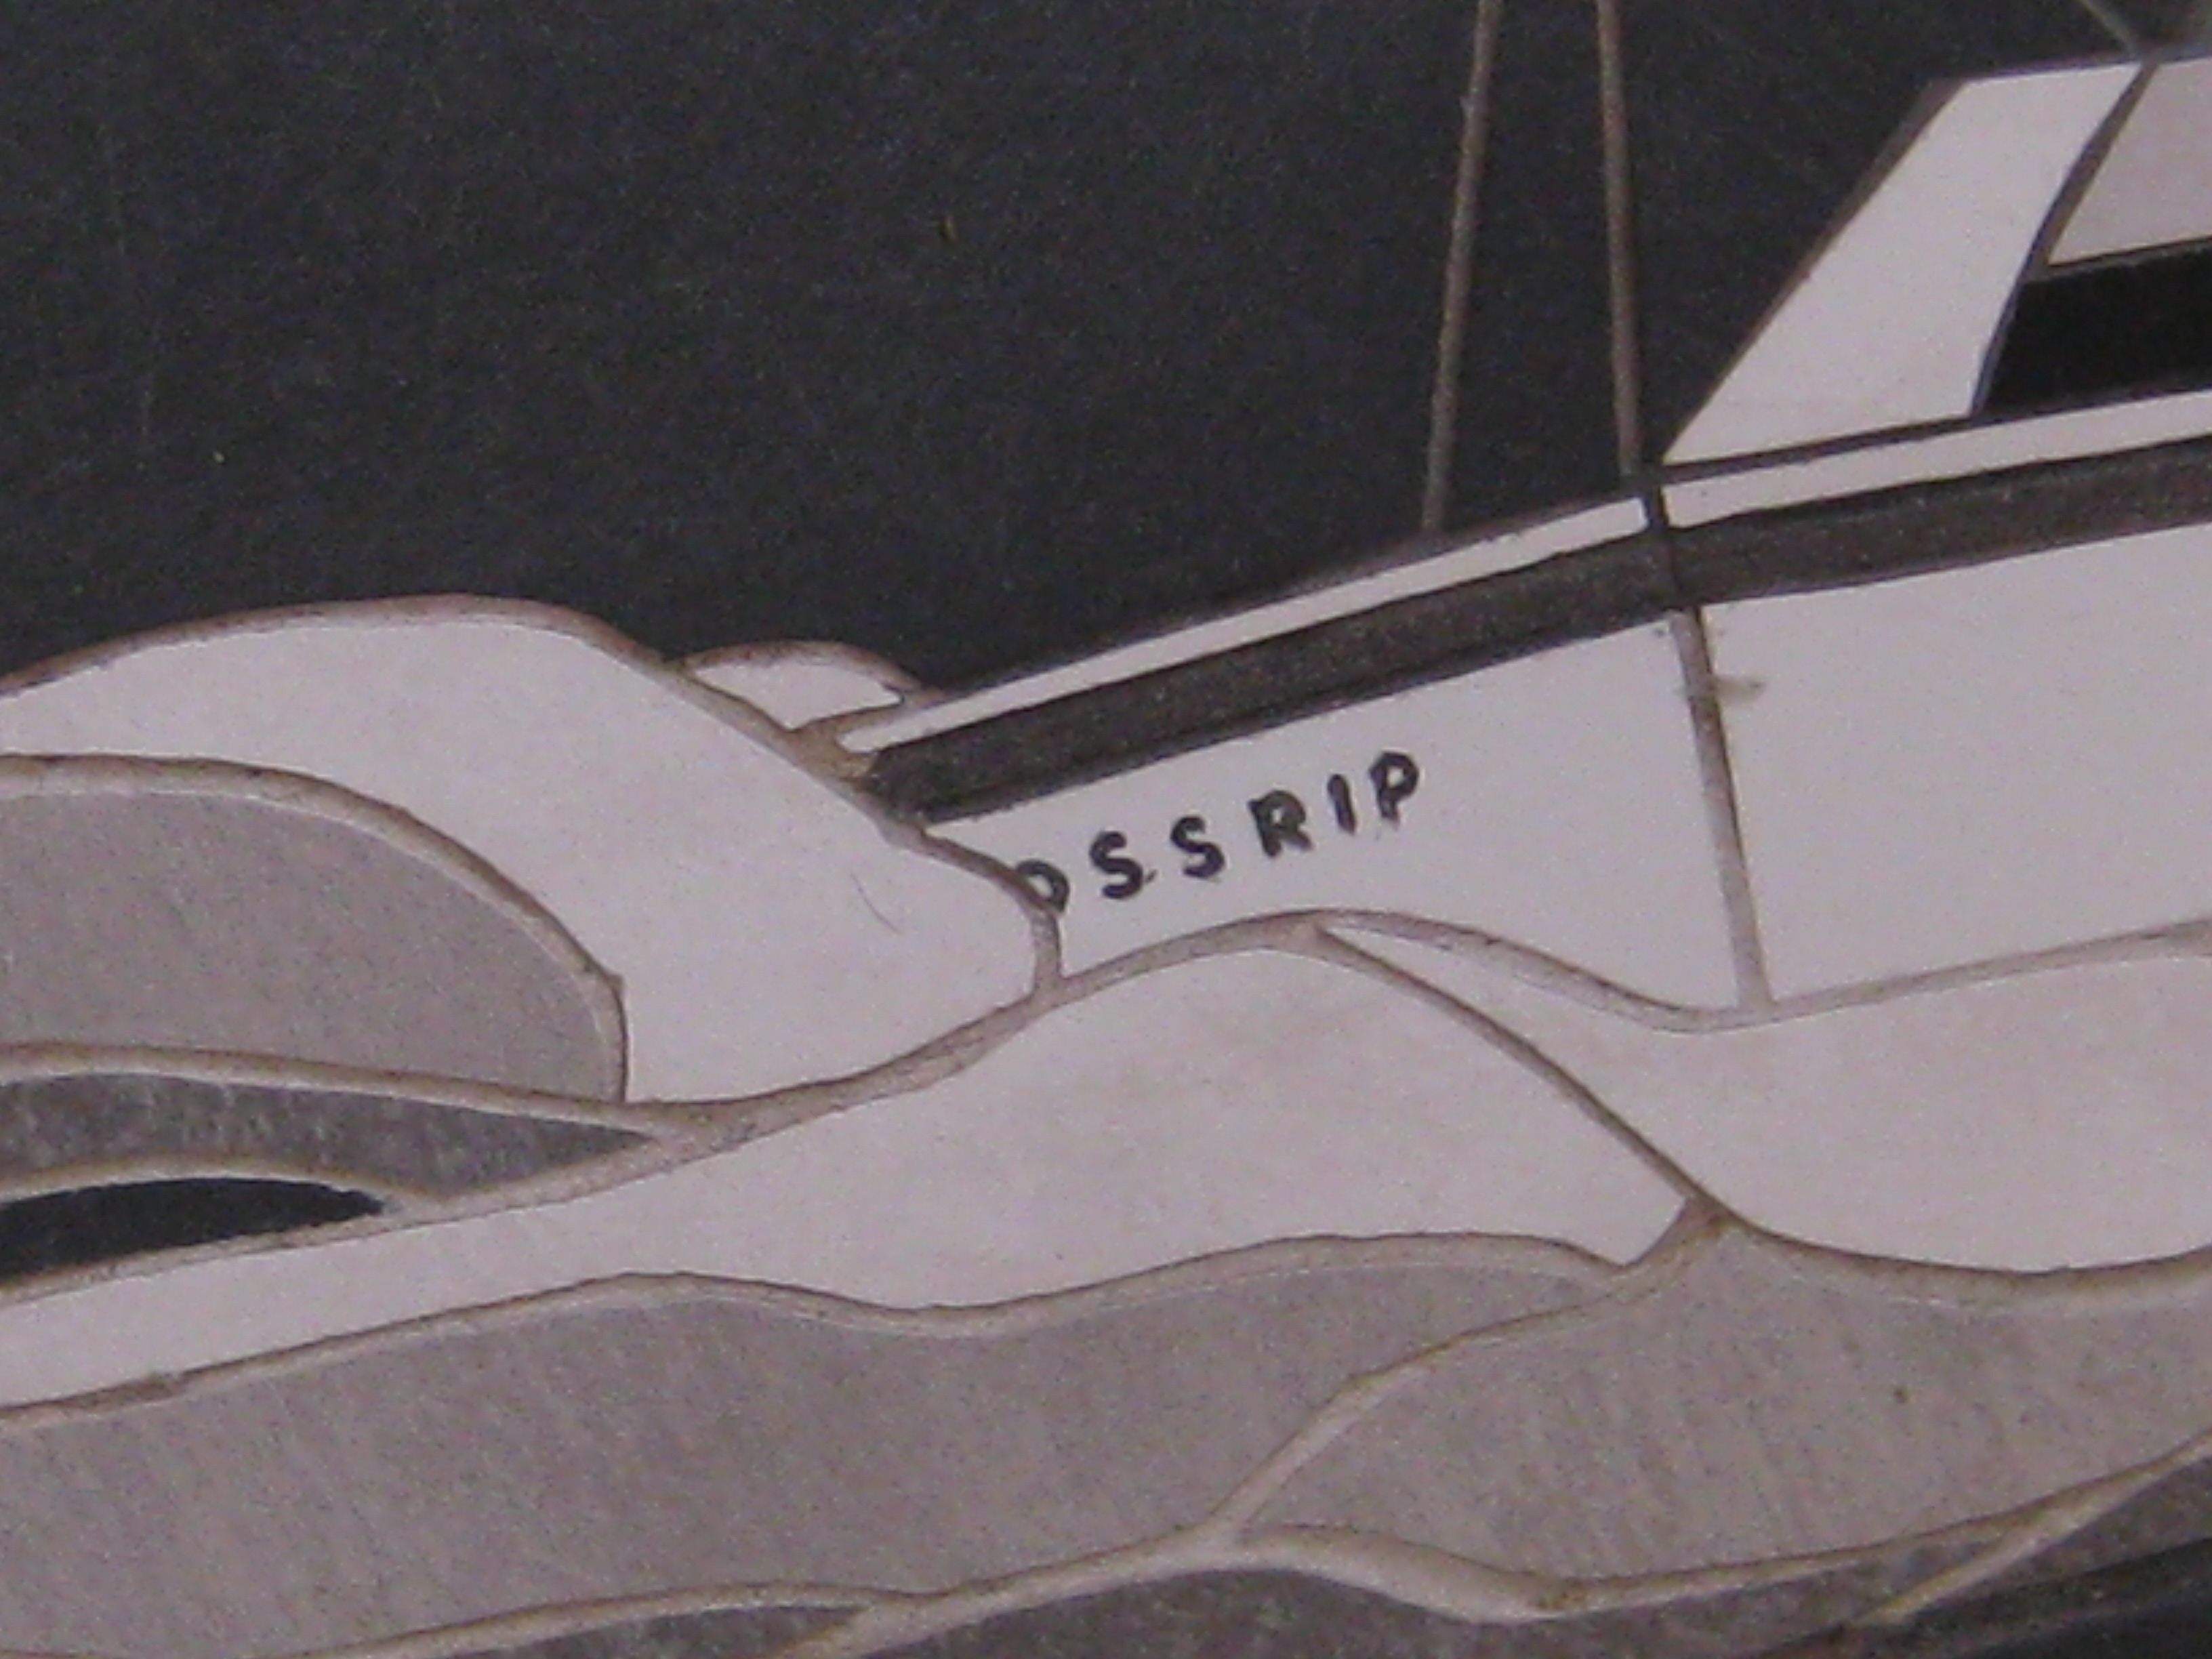 Detail of Crossrip Transom